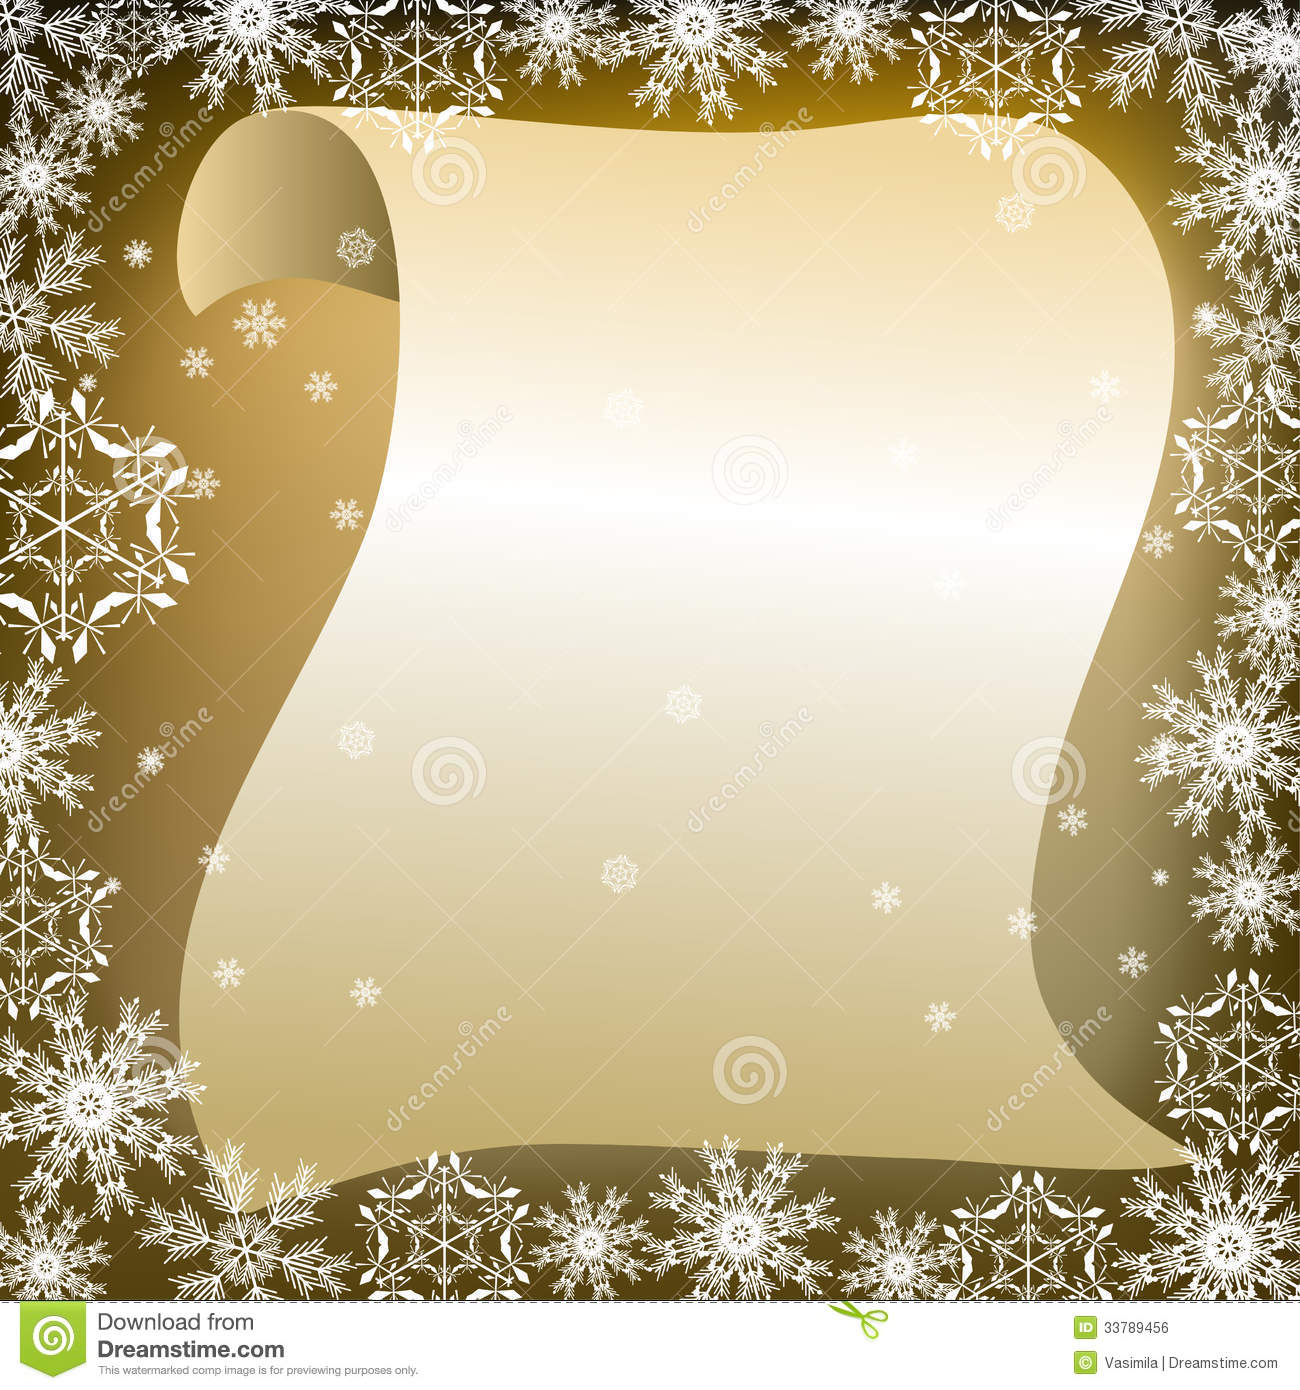 Letter To Santa Claus Royalty Free Stock Image - Image